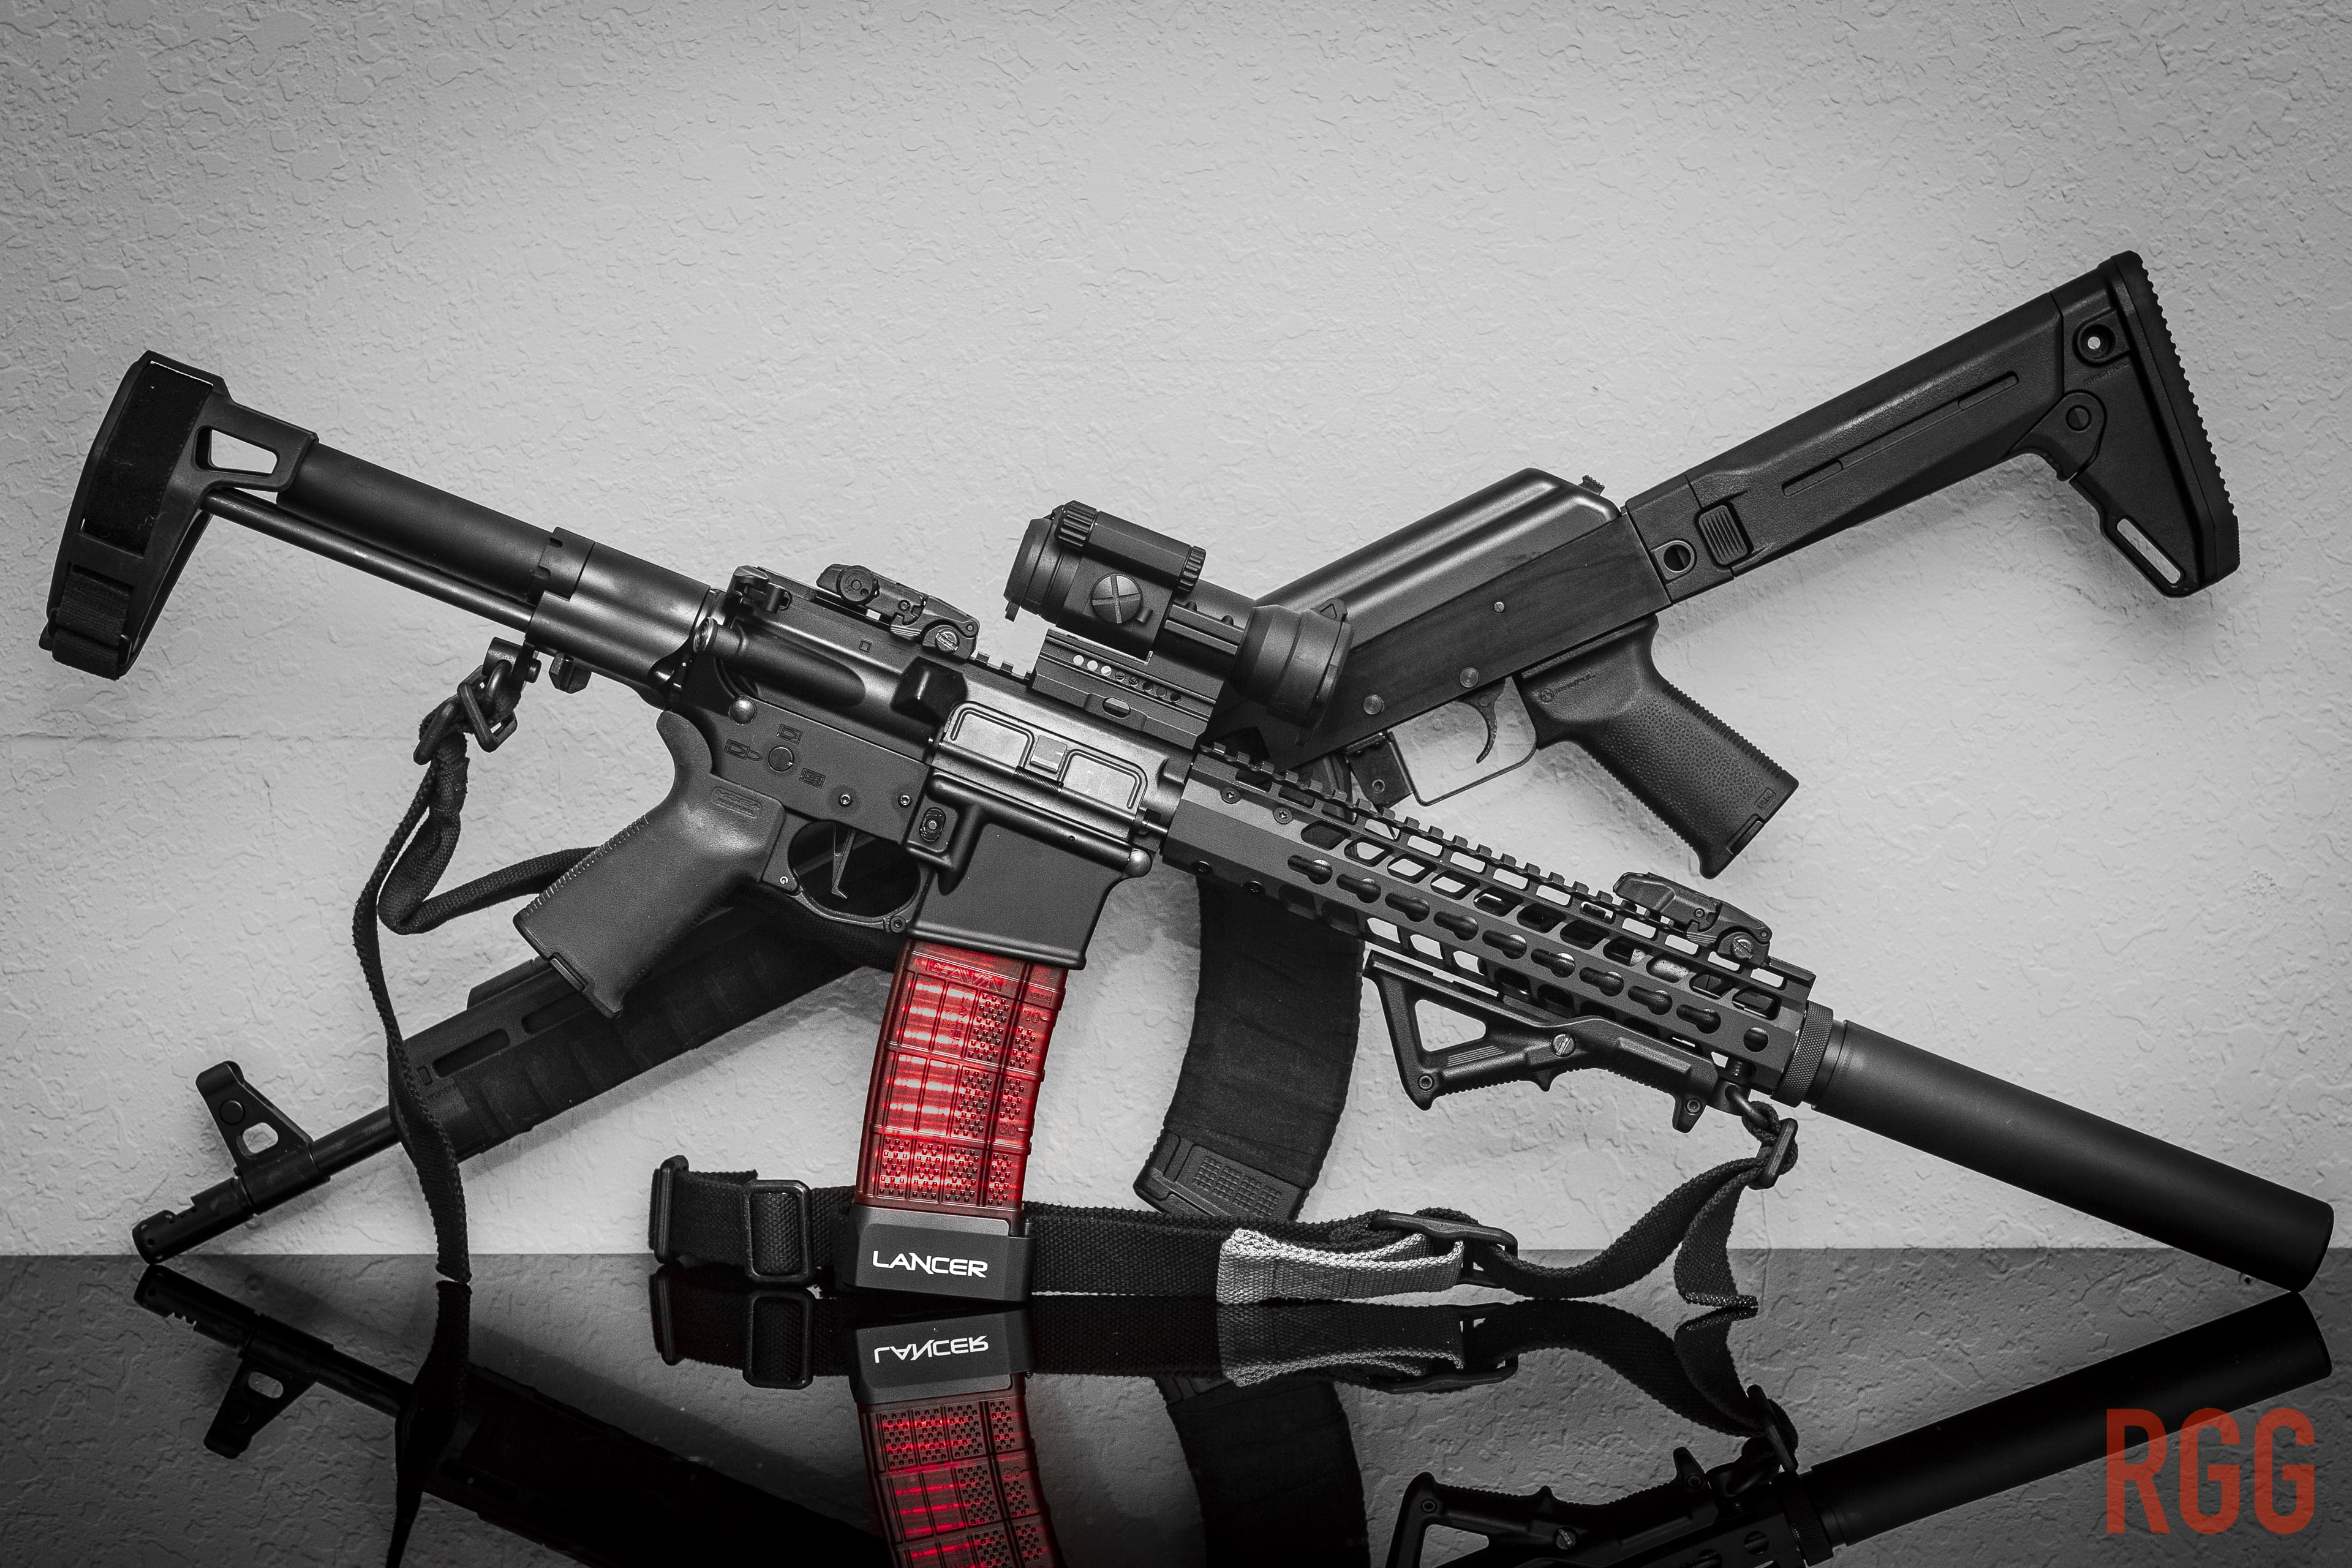 An AR or an AK - or any other firearm. It is your right to own them.